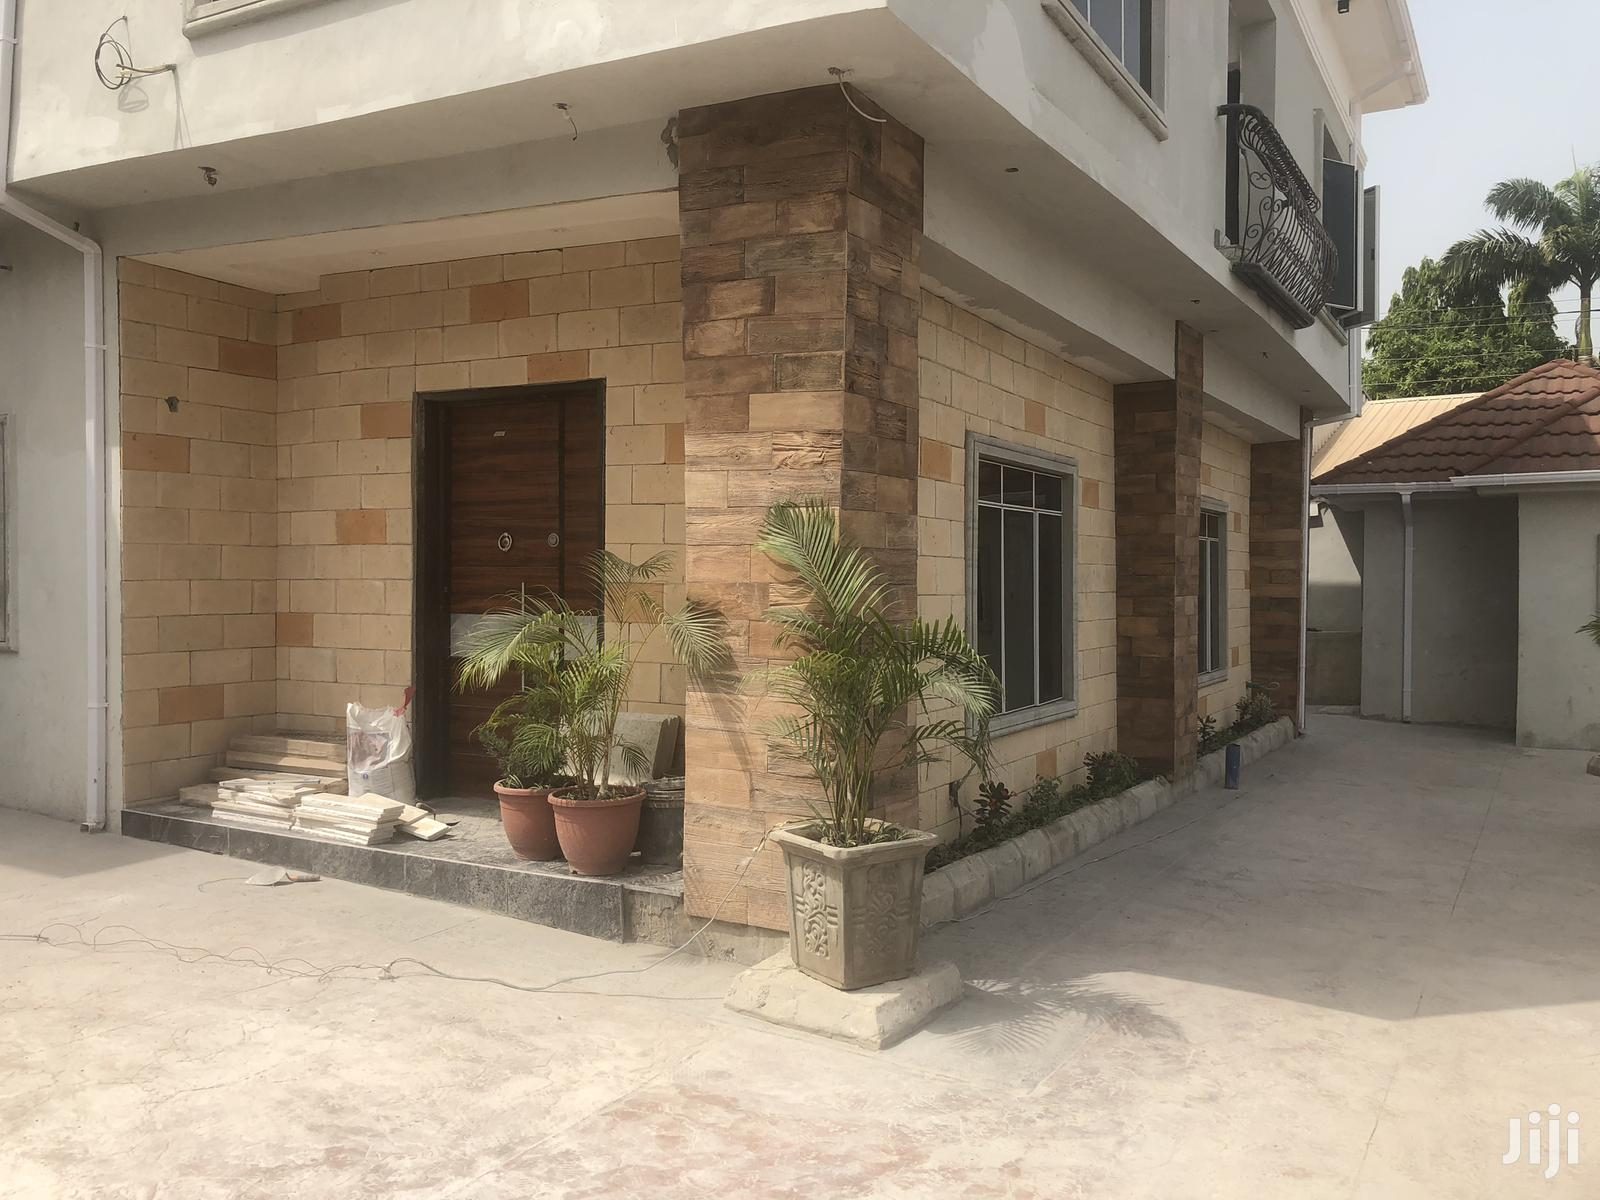 Stones And Bricks For Wall Cladding | Building Materials for sale in Oshimili South, Delta State, Nigeria